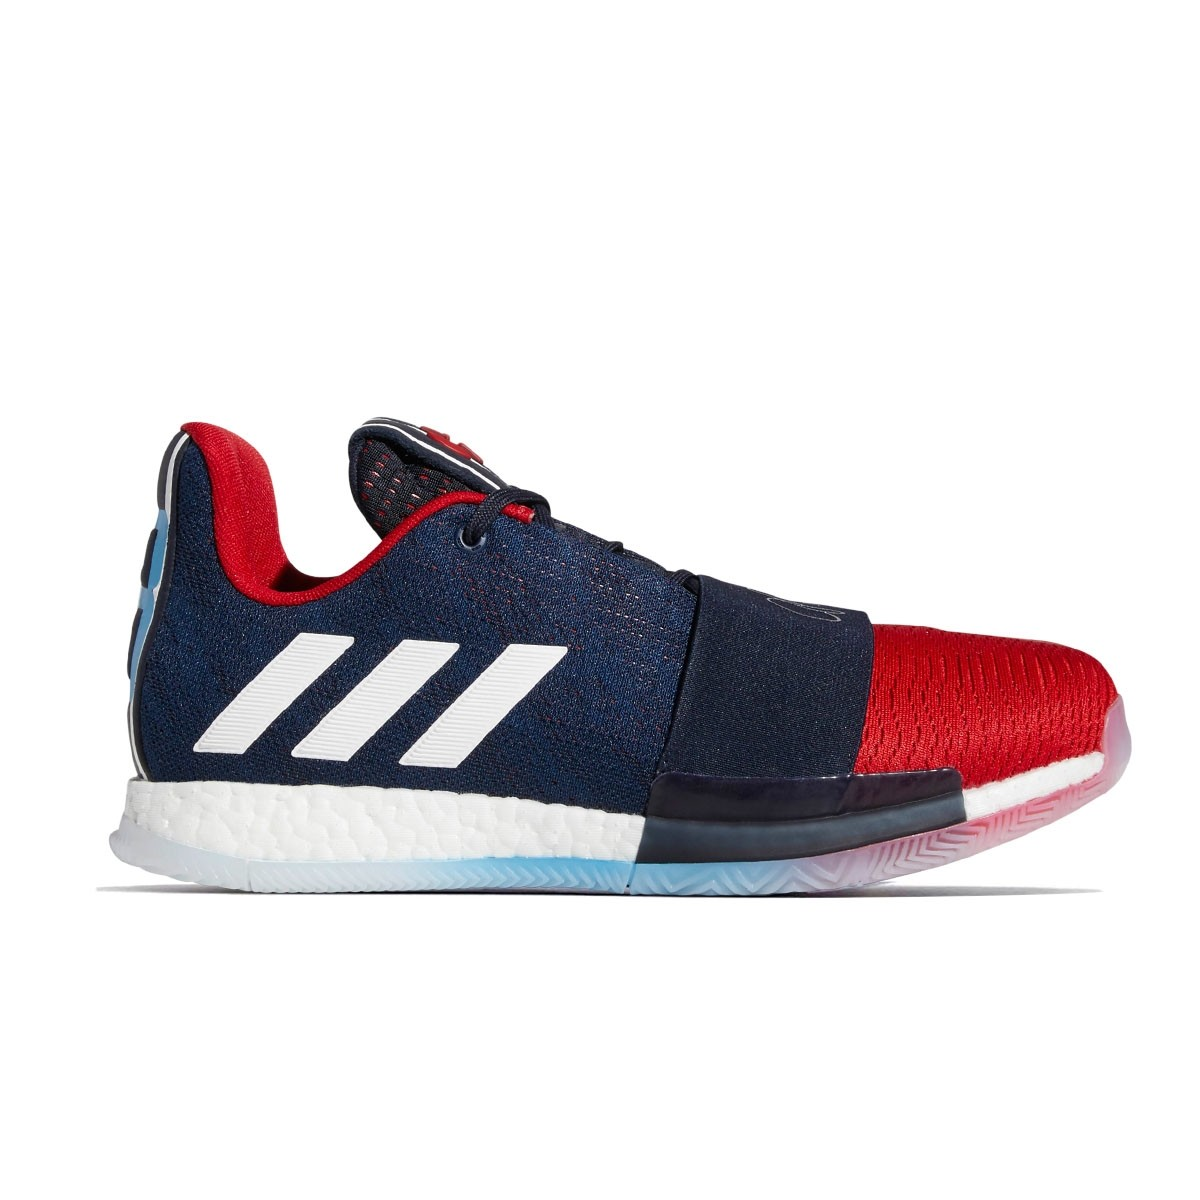 5c5def99bef2 Buy ADIDAS Harden Vol.3  Rockets  Basketball shoes   sneakers